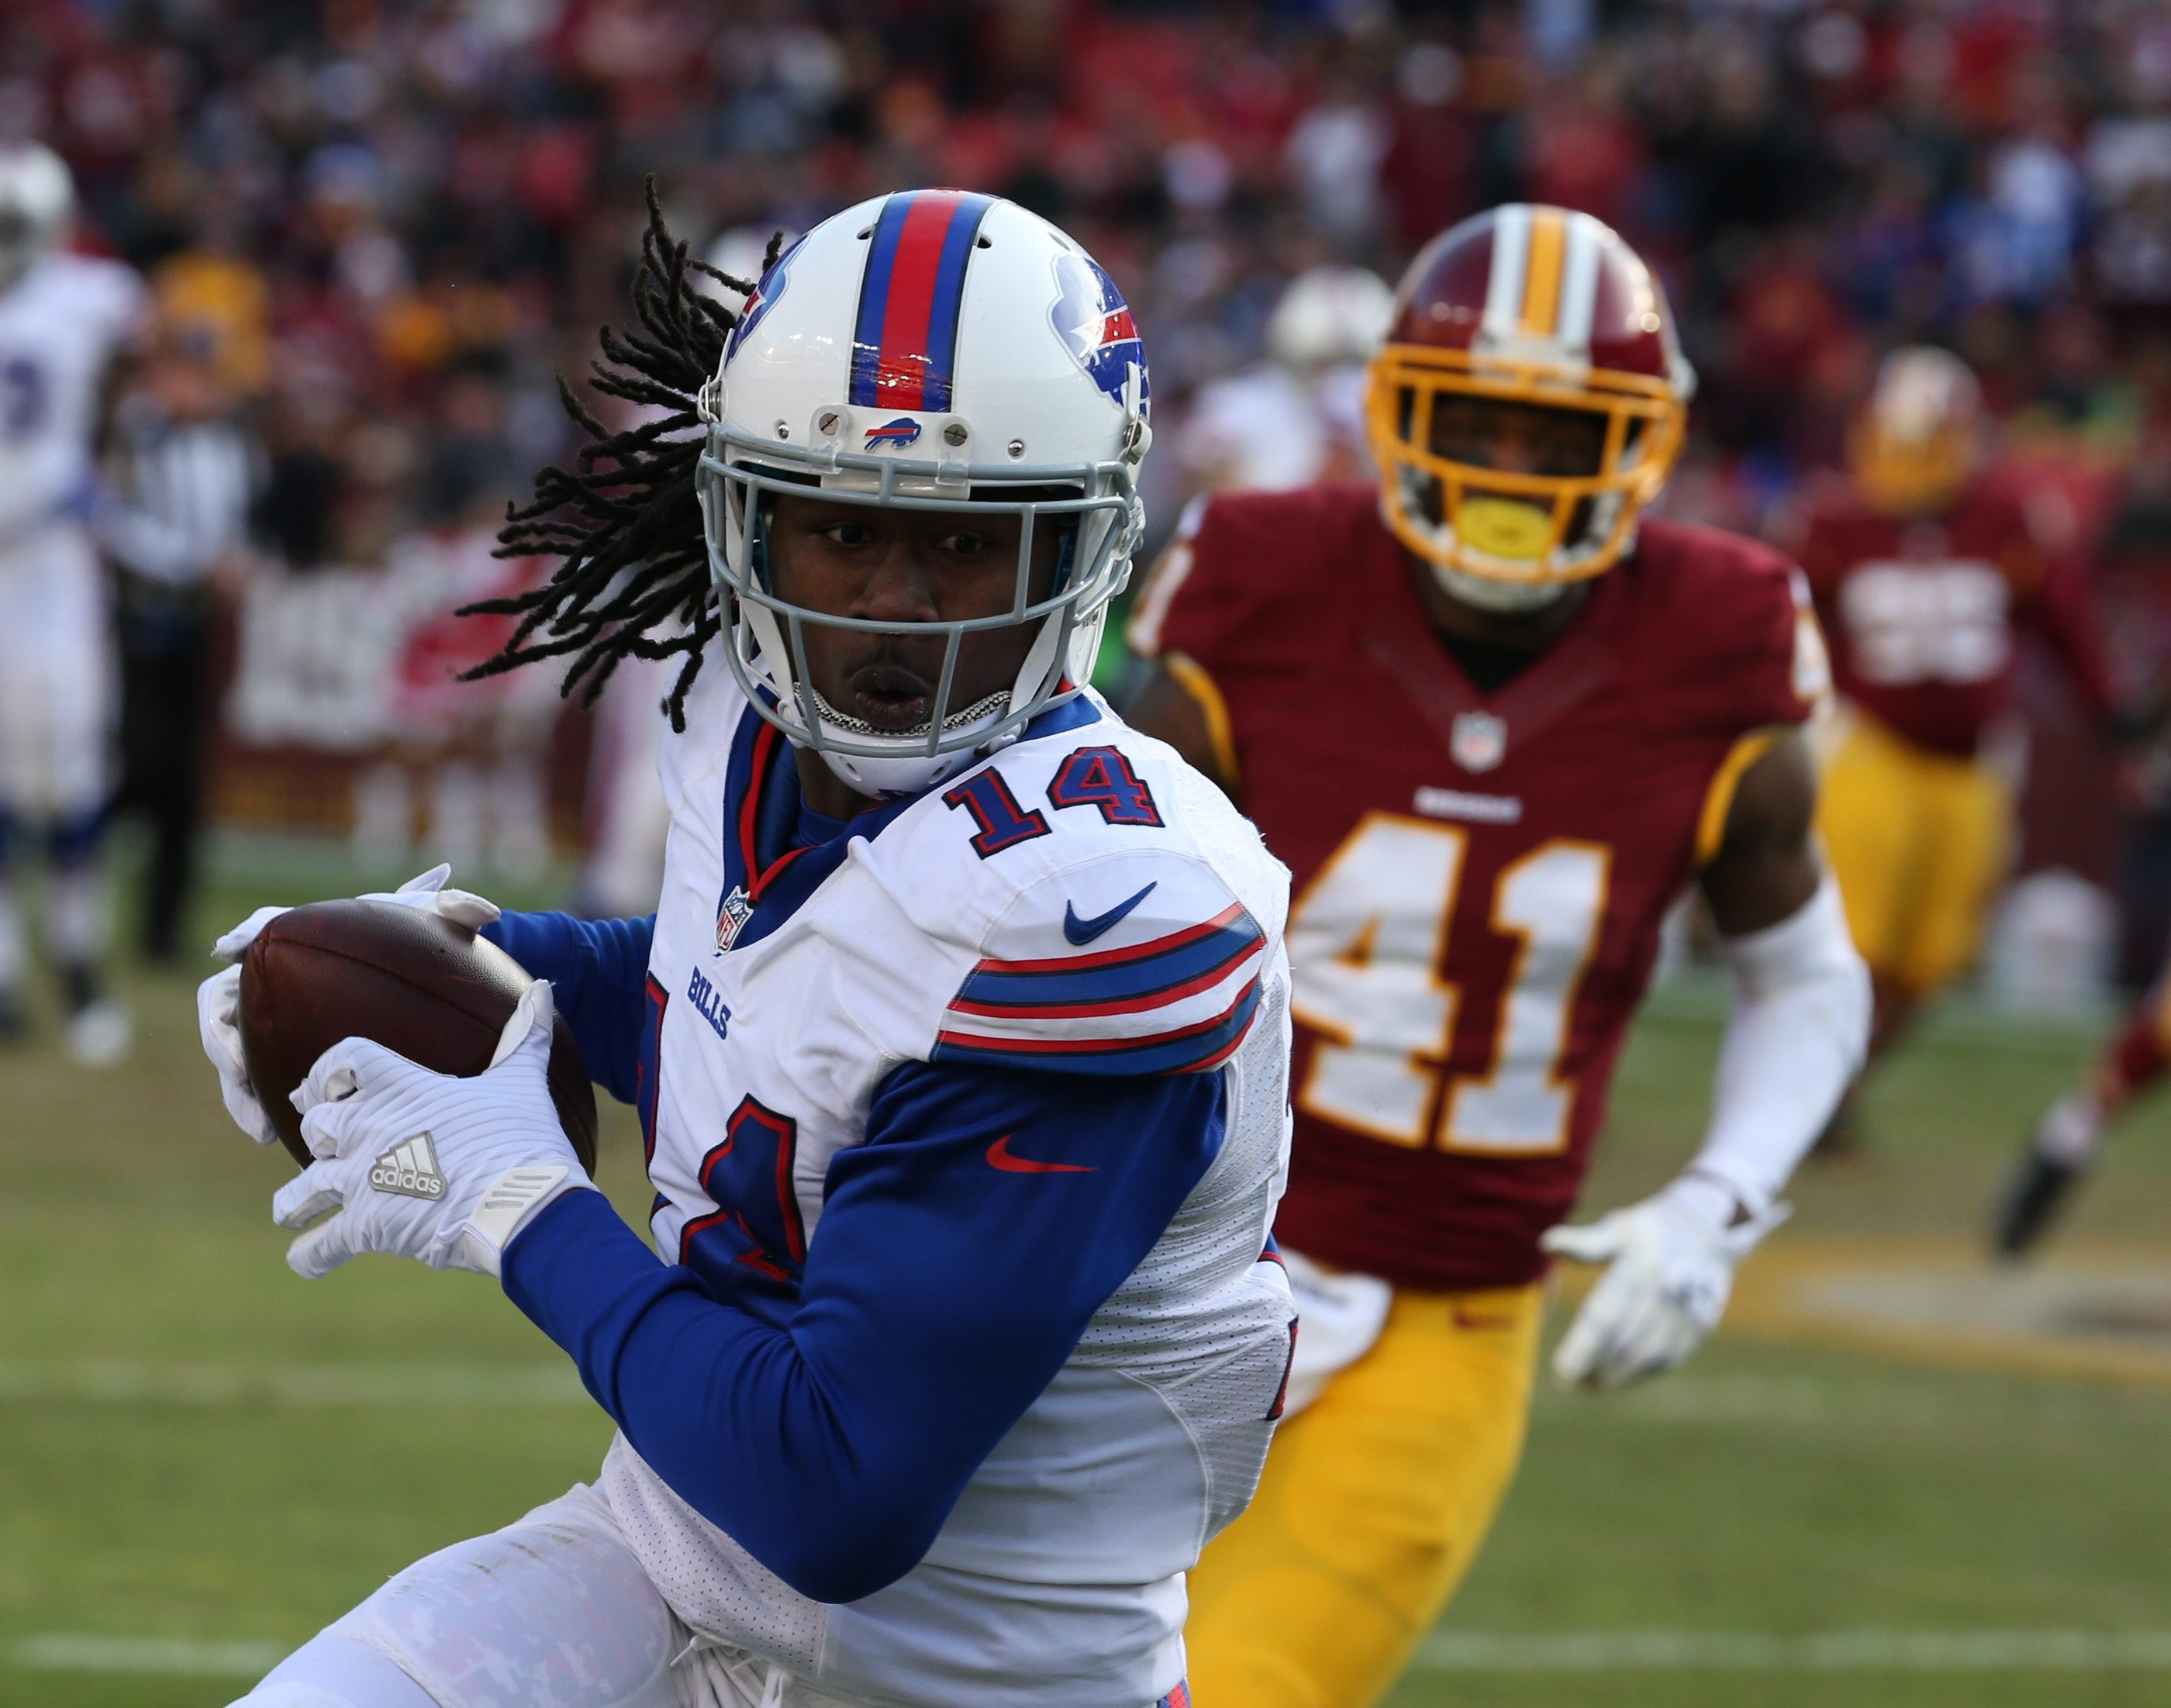 Buffalo Bills wide receiver Sammy Watkins (14) makes a great catch over his head n the third quarter at Fed Ex Field in Landover, Md., on Sunday, Dec. 20, 2015. (James P. McCoy/Buffalo News)